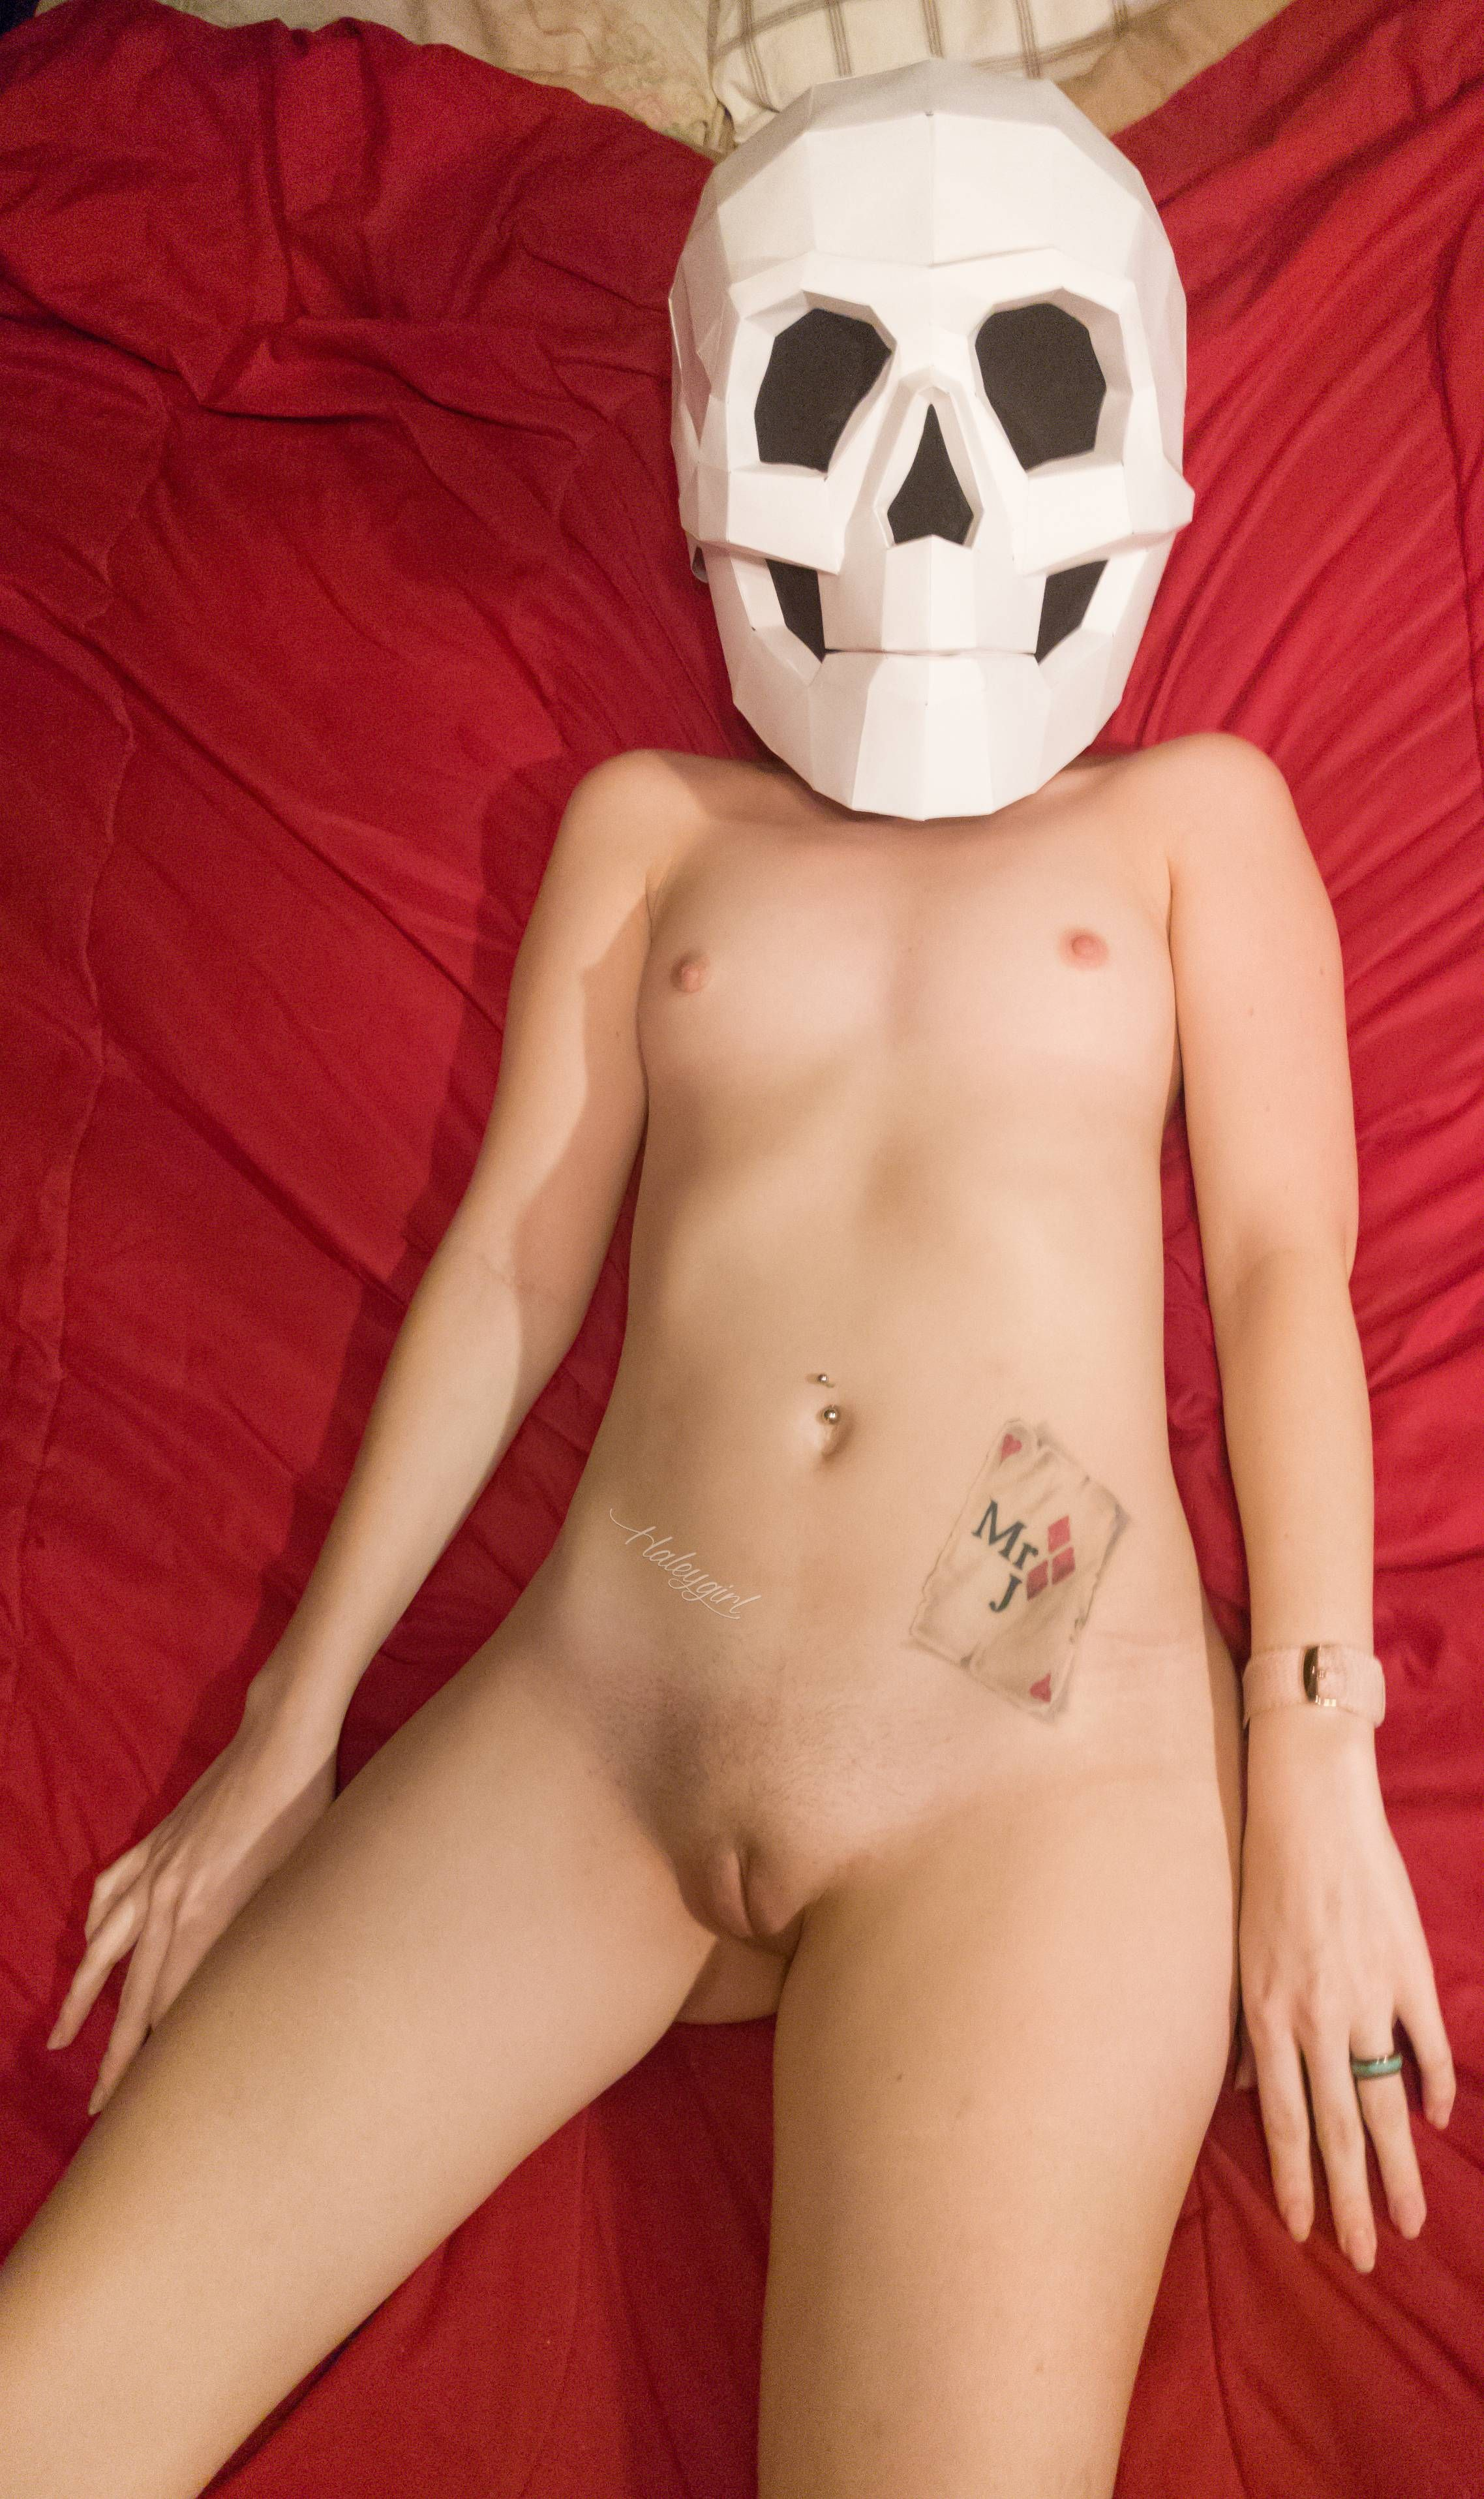 [Petite Amateurs] Anybody wanna skull fuck?